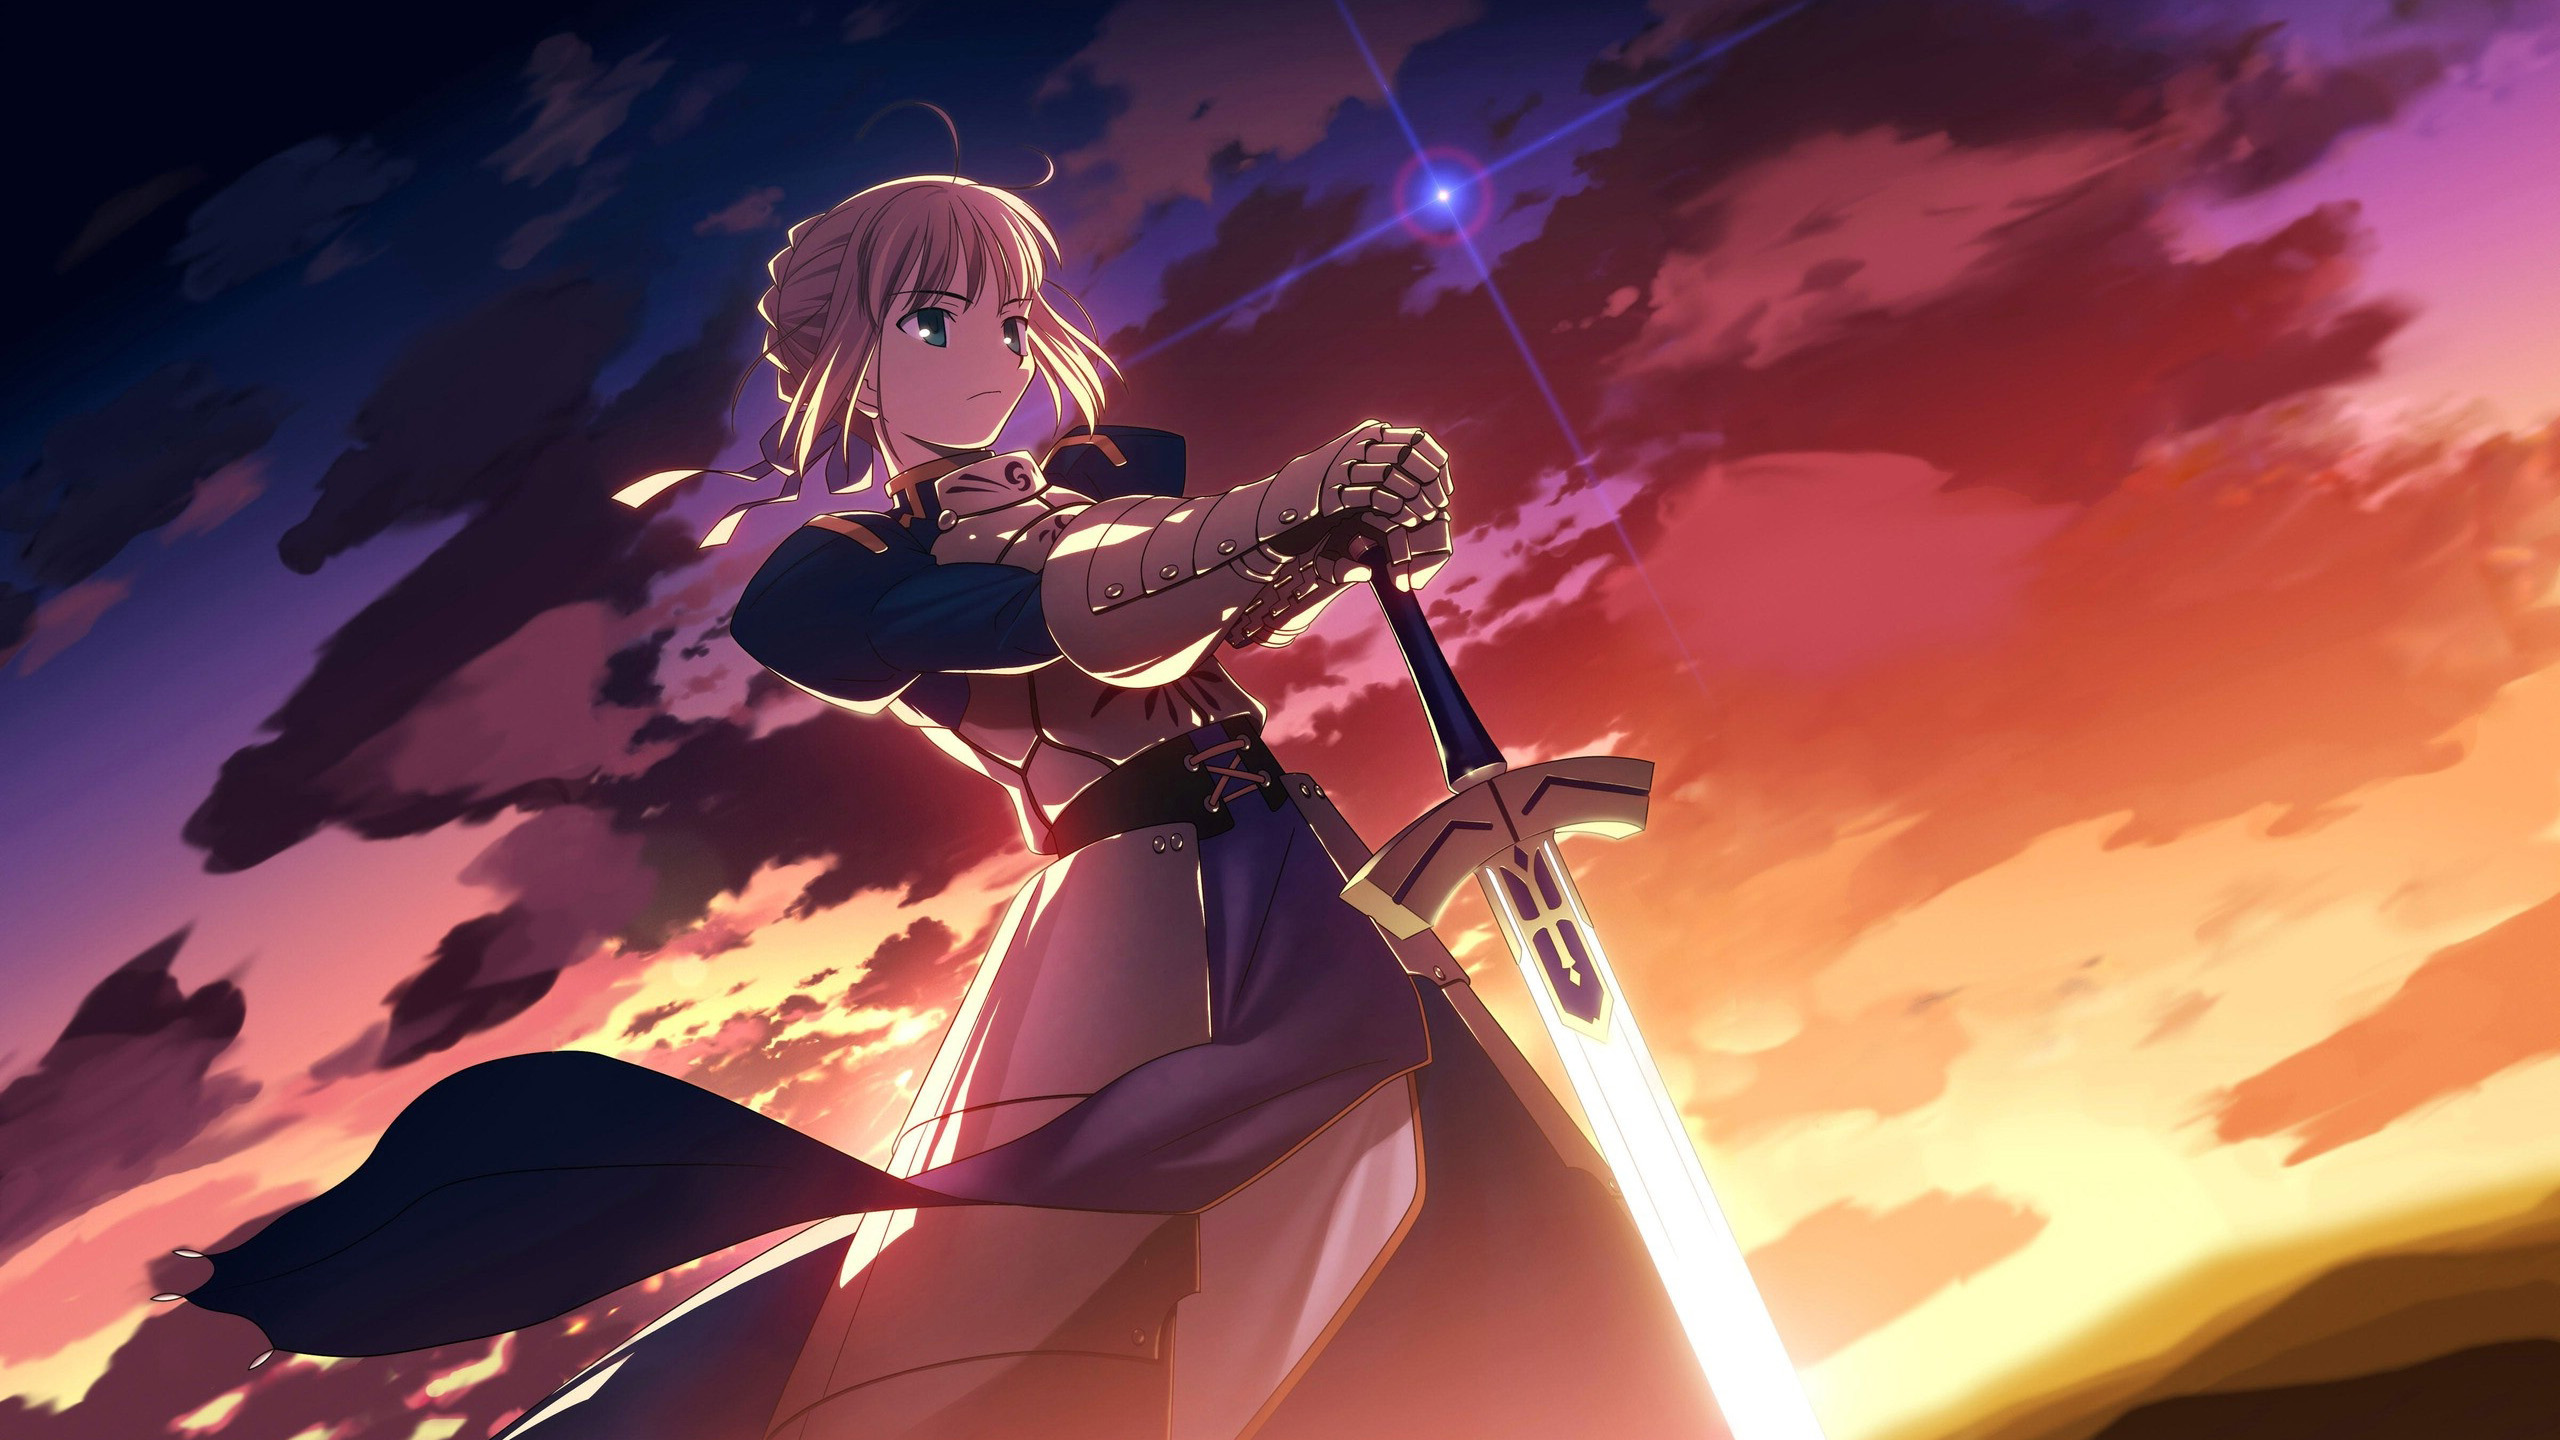 Fate Stay Night Saber Wallpaper - WallpaperSafari